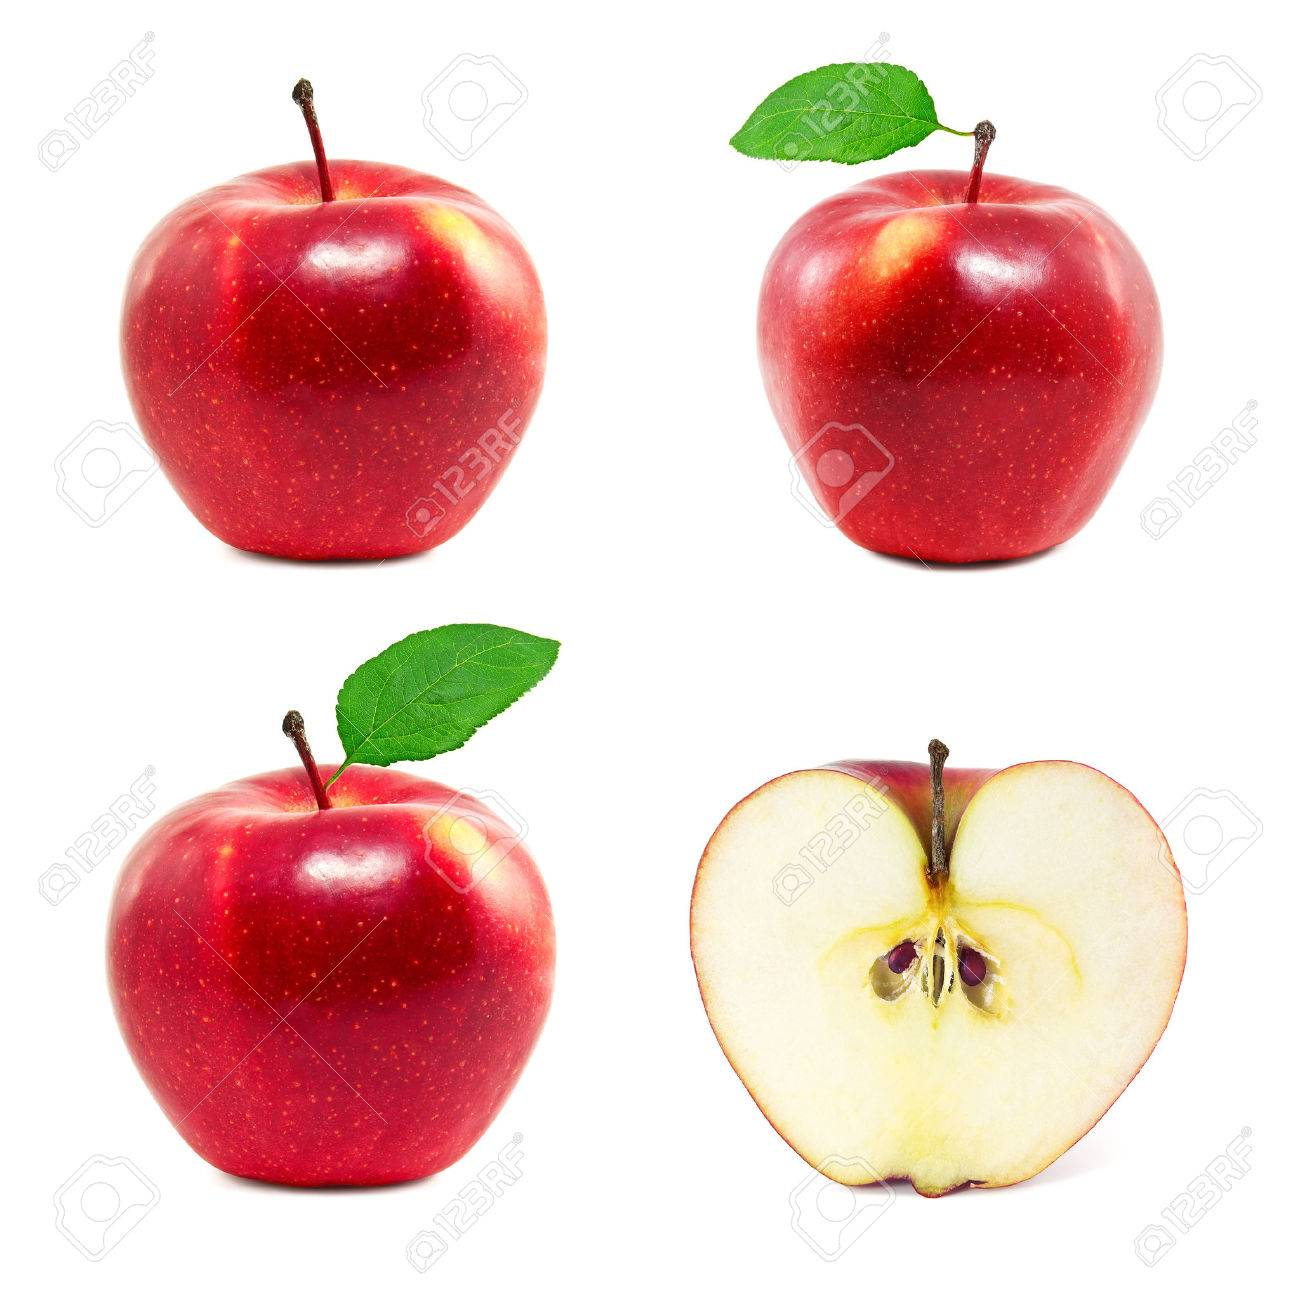 Set of red apples on a white background - 41758578